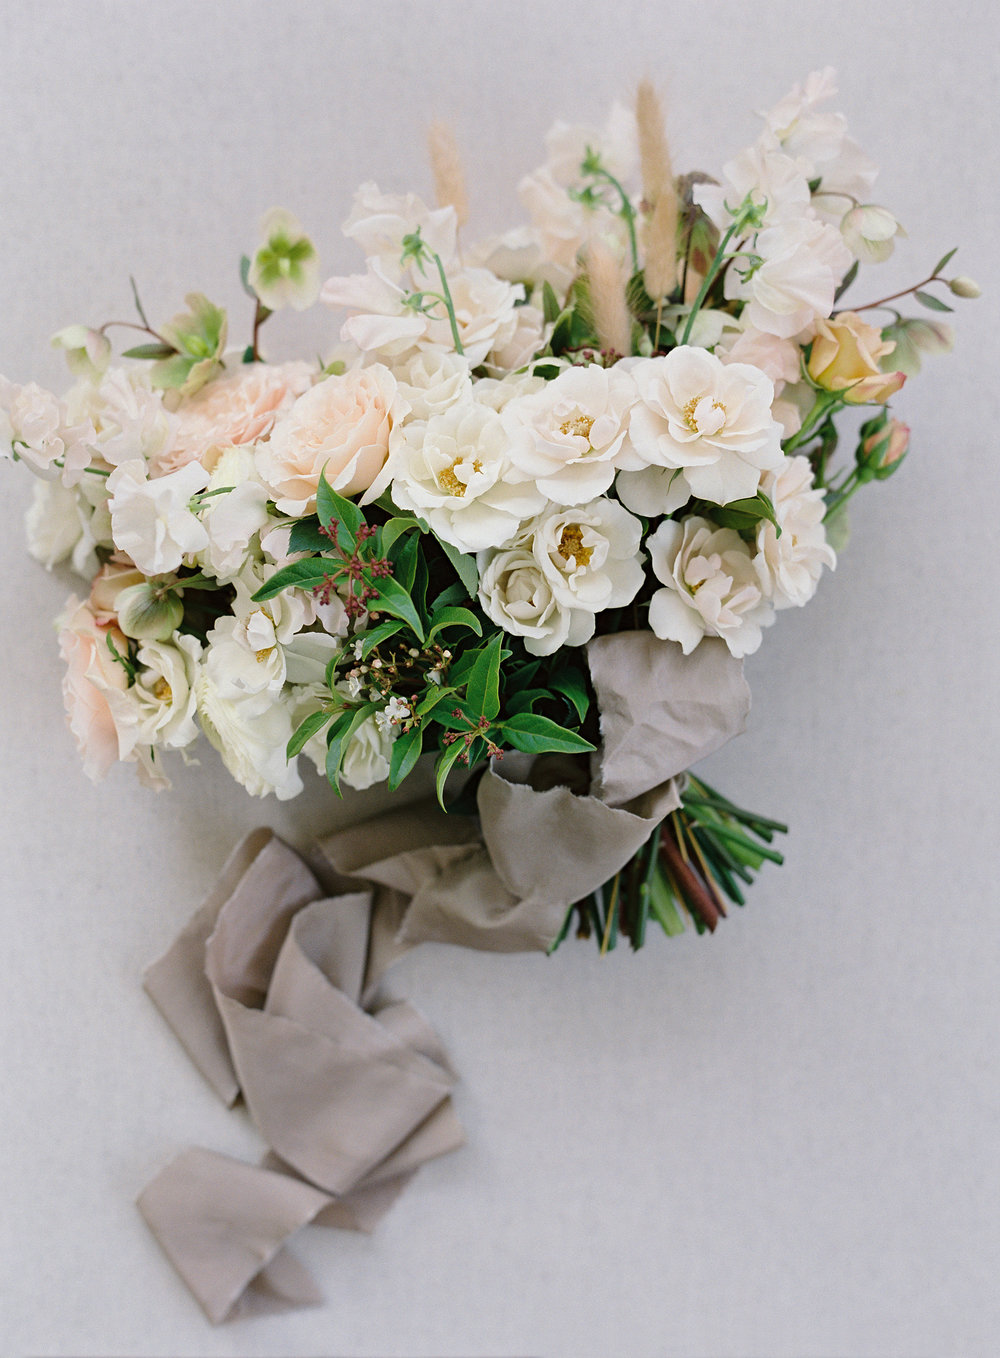 13-Bouquet_by_Ellamah-Photo_by_Christine_Donee.jpg